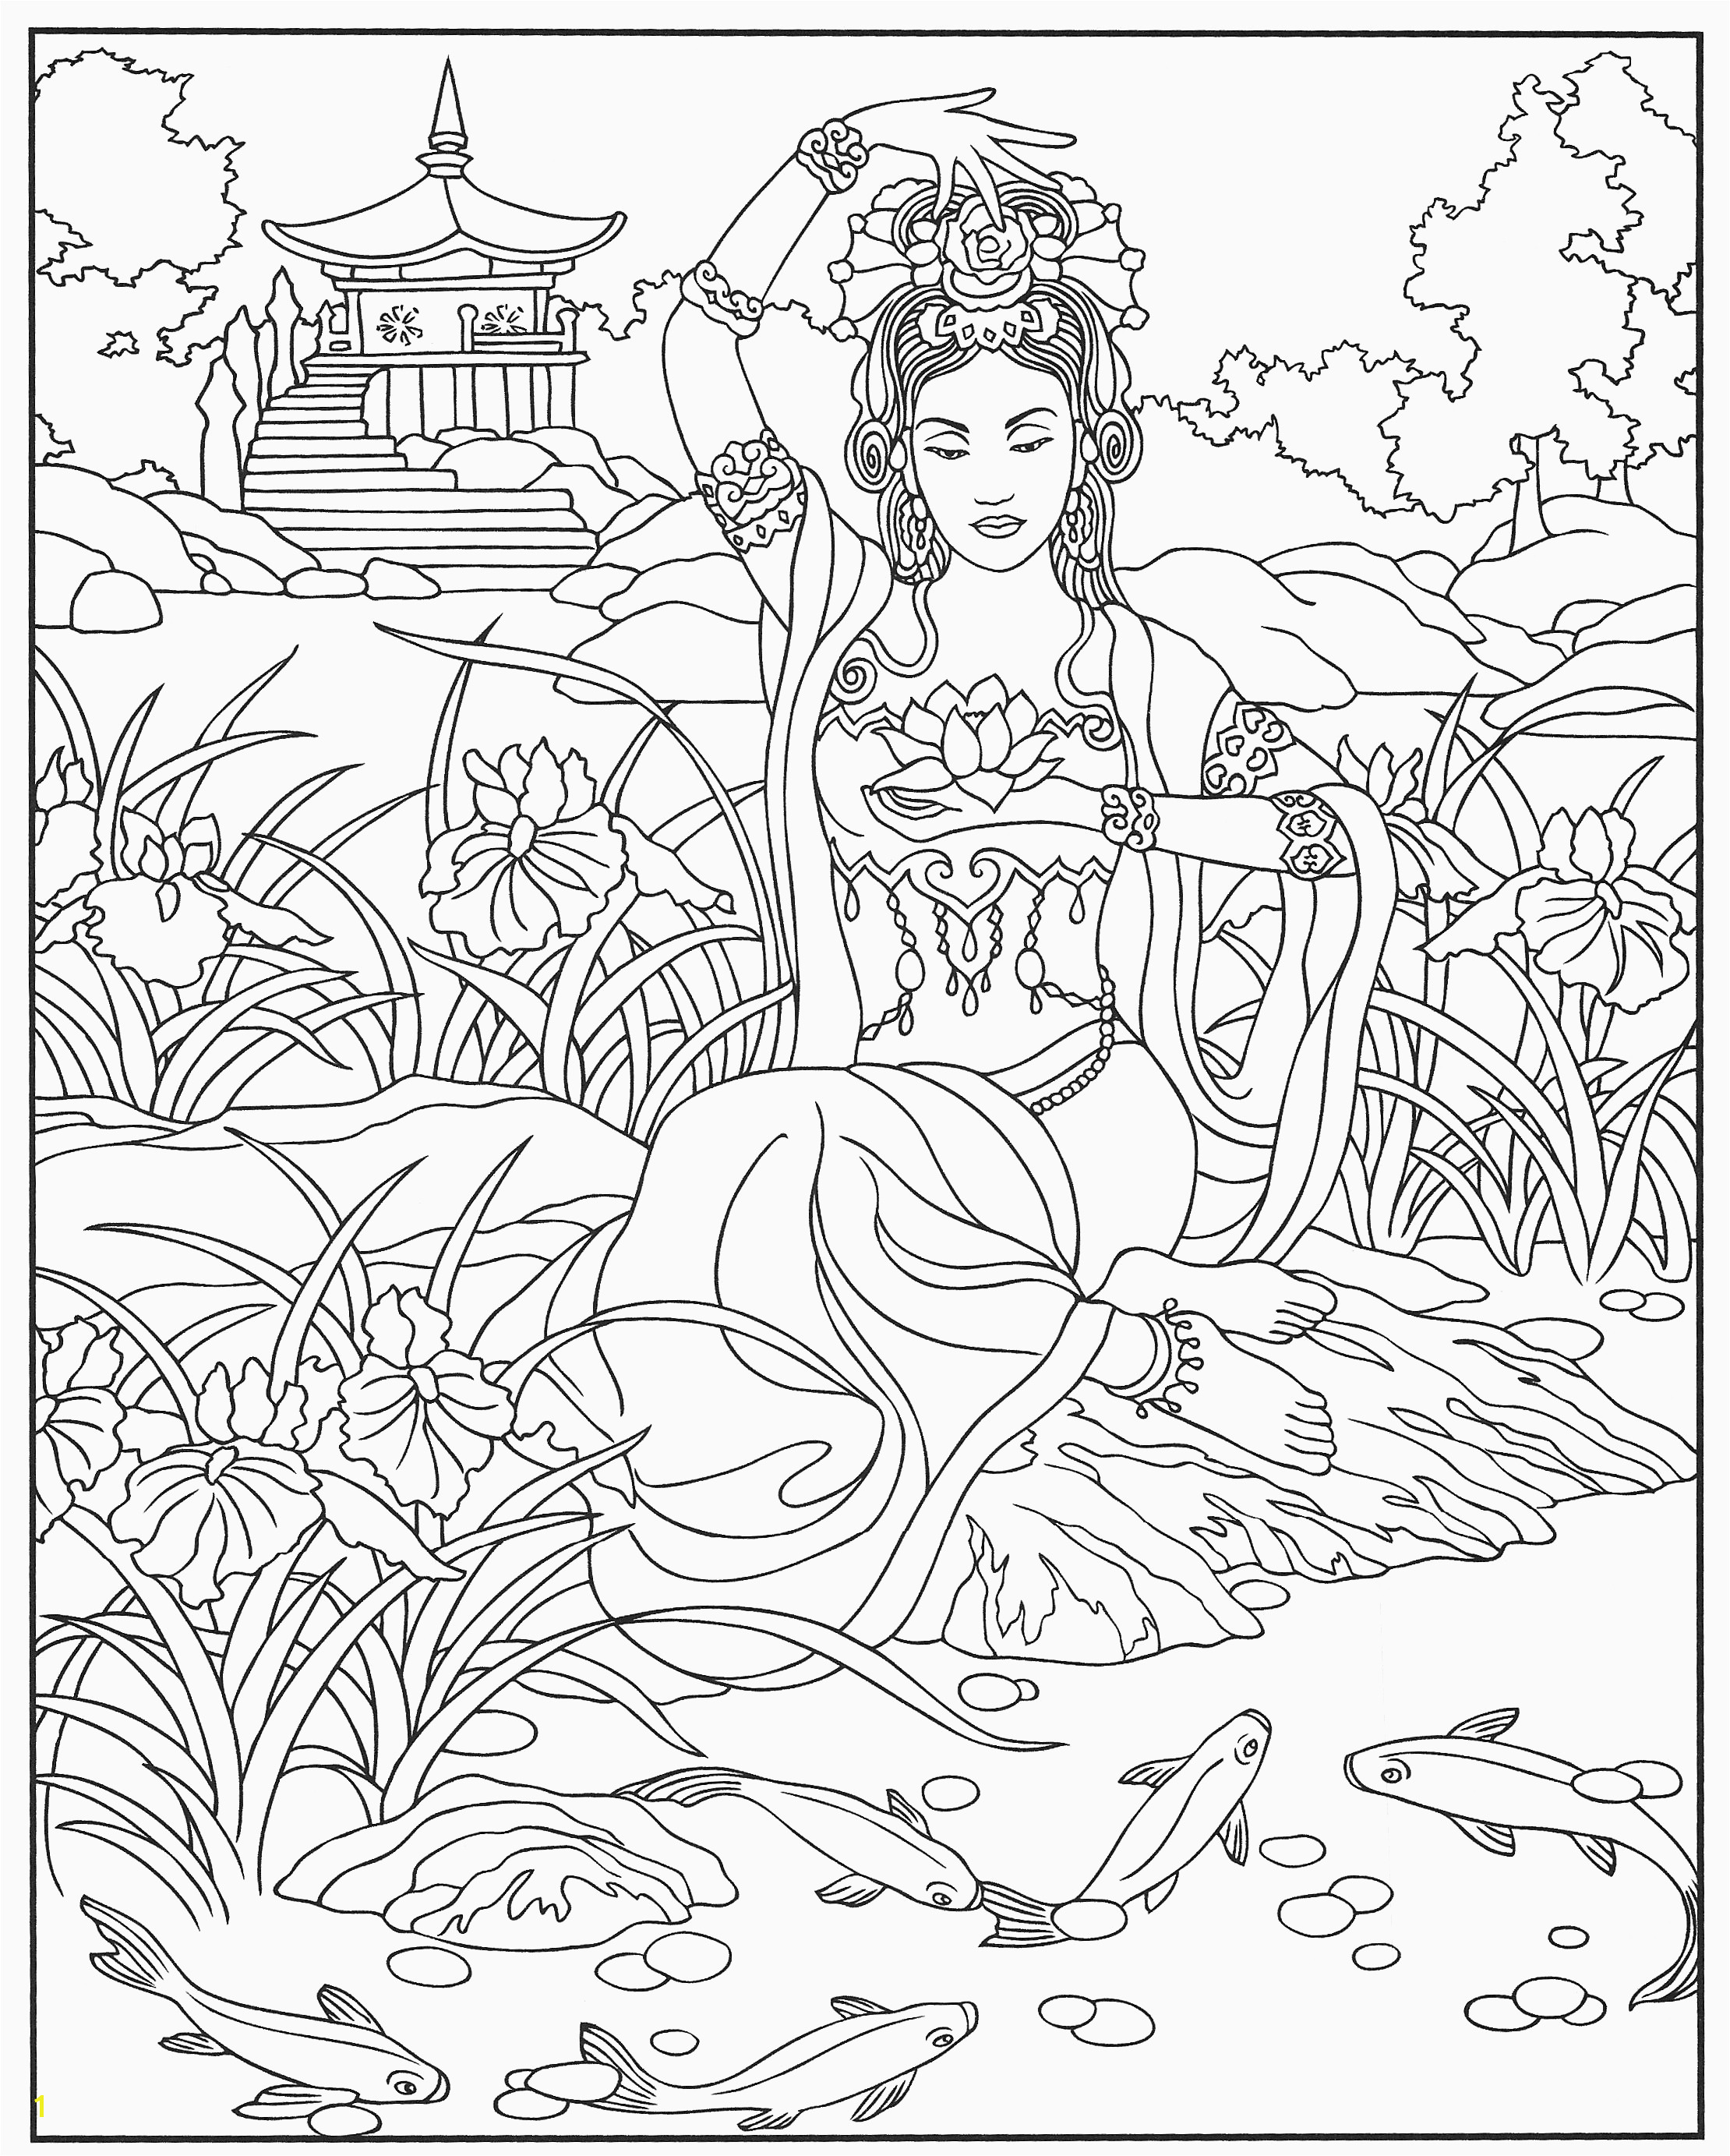 Free Coloring Pages for Girls Girl Scout Birthday Coloring Pages Free Coloring Pages for Girls